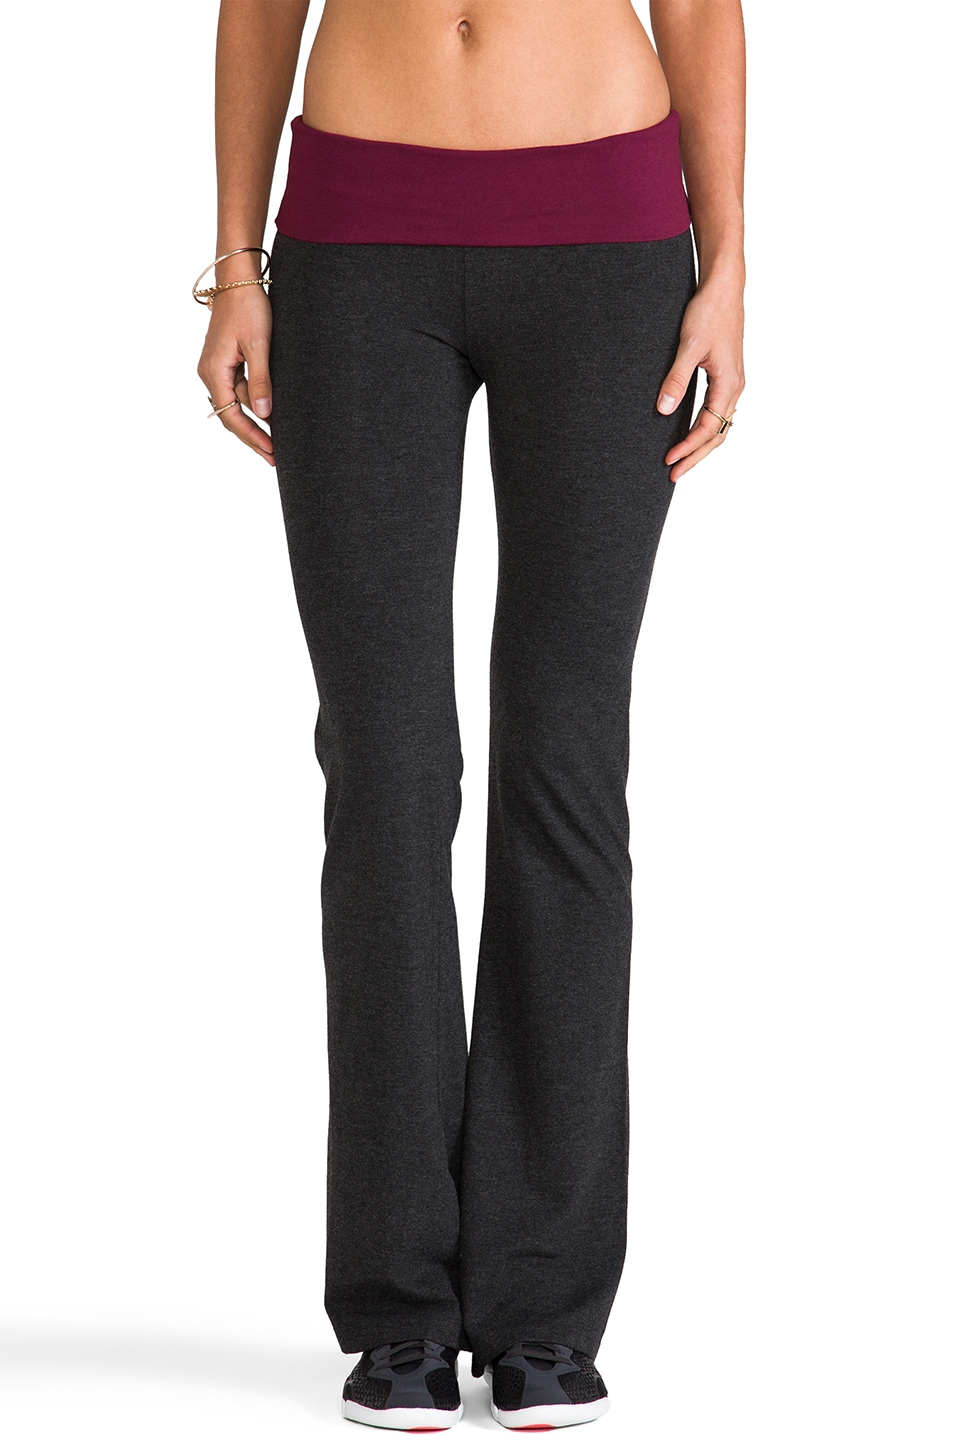 SOLOW Basics Contrast Fold Over Pant in Heather Charcoal/Oxblood